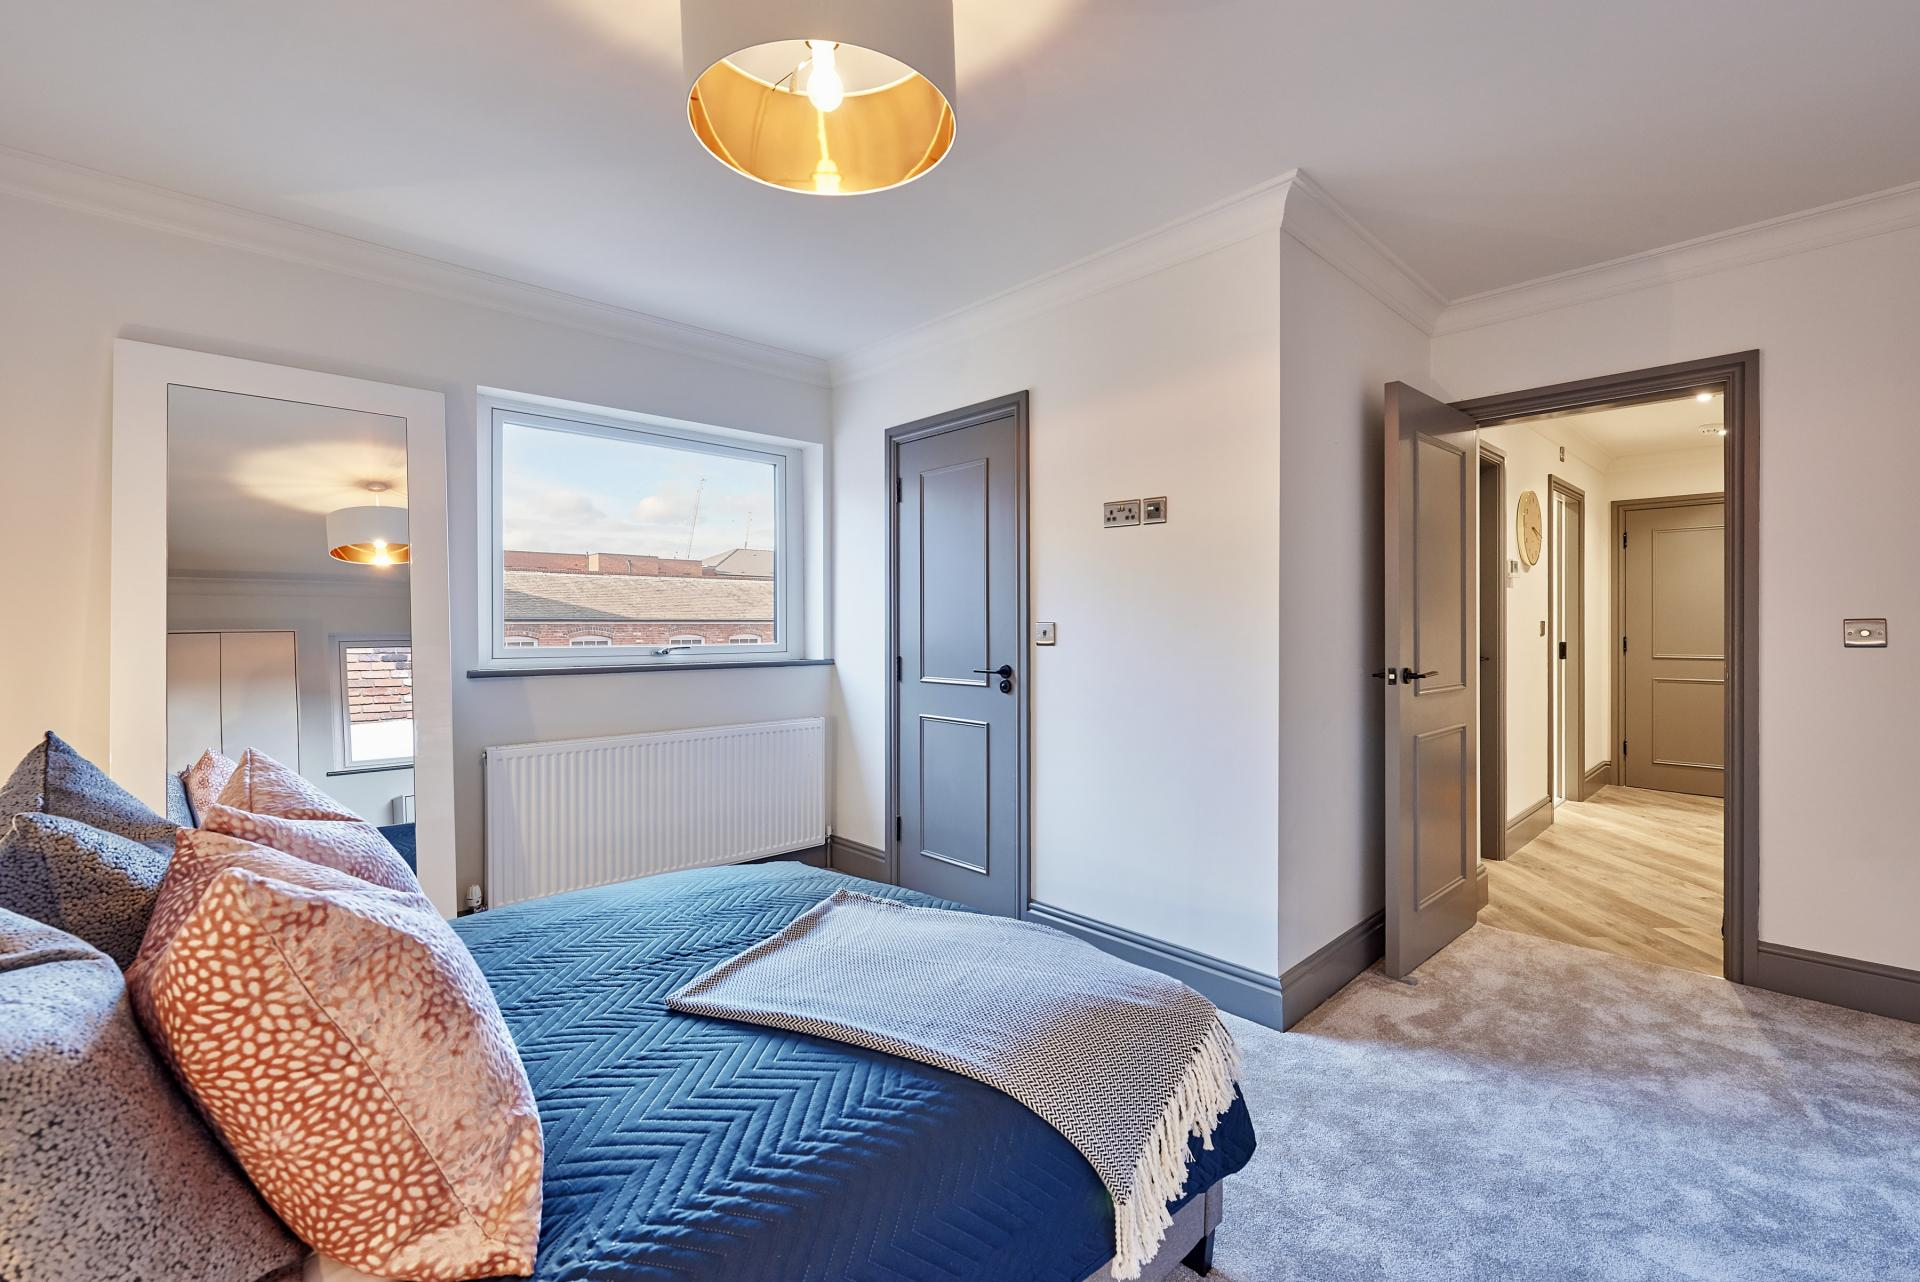 Master Bedroom at The St Paul's Residence, Jewellery Quarter, Birmingham - Citybase Apartments